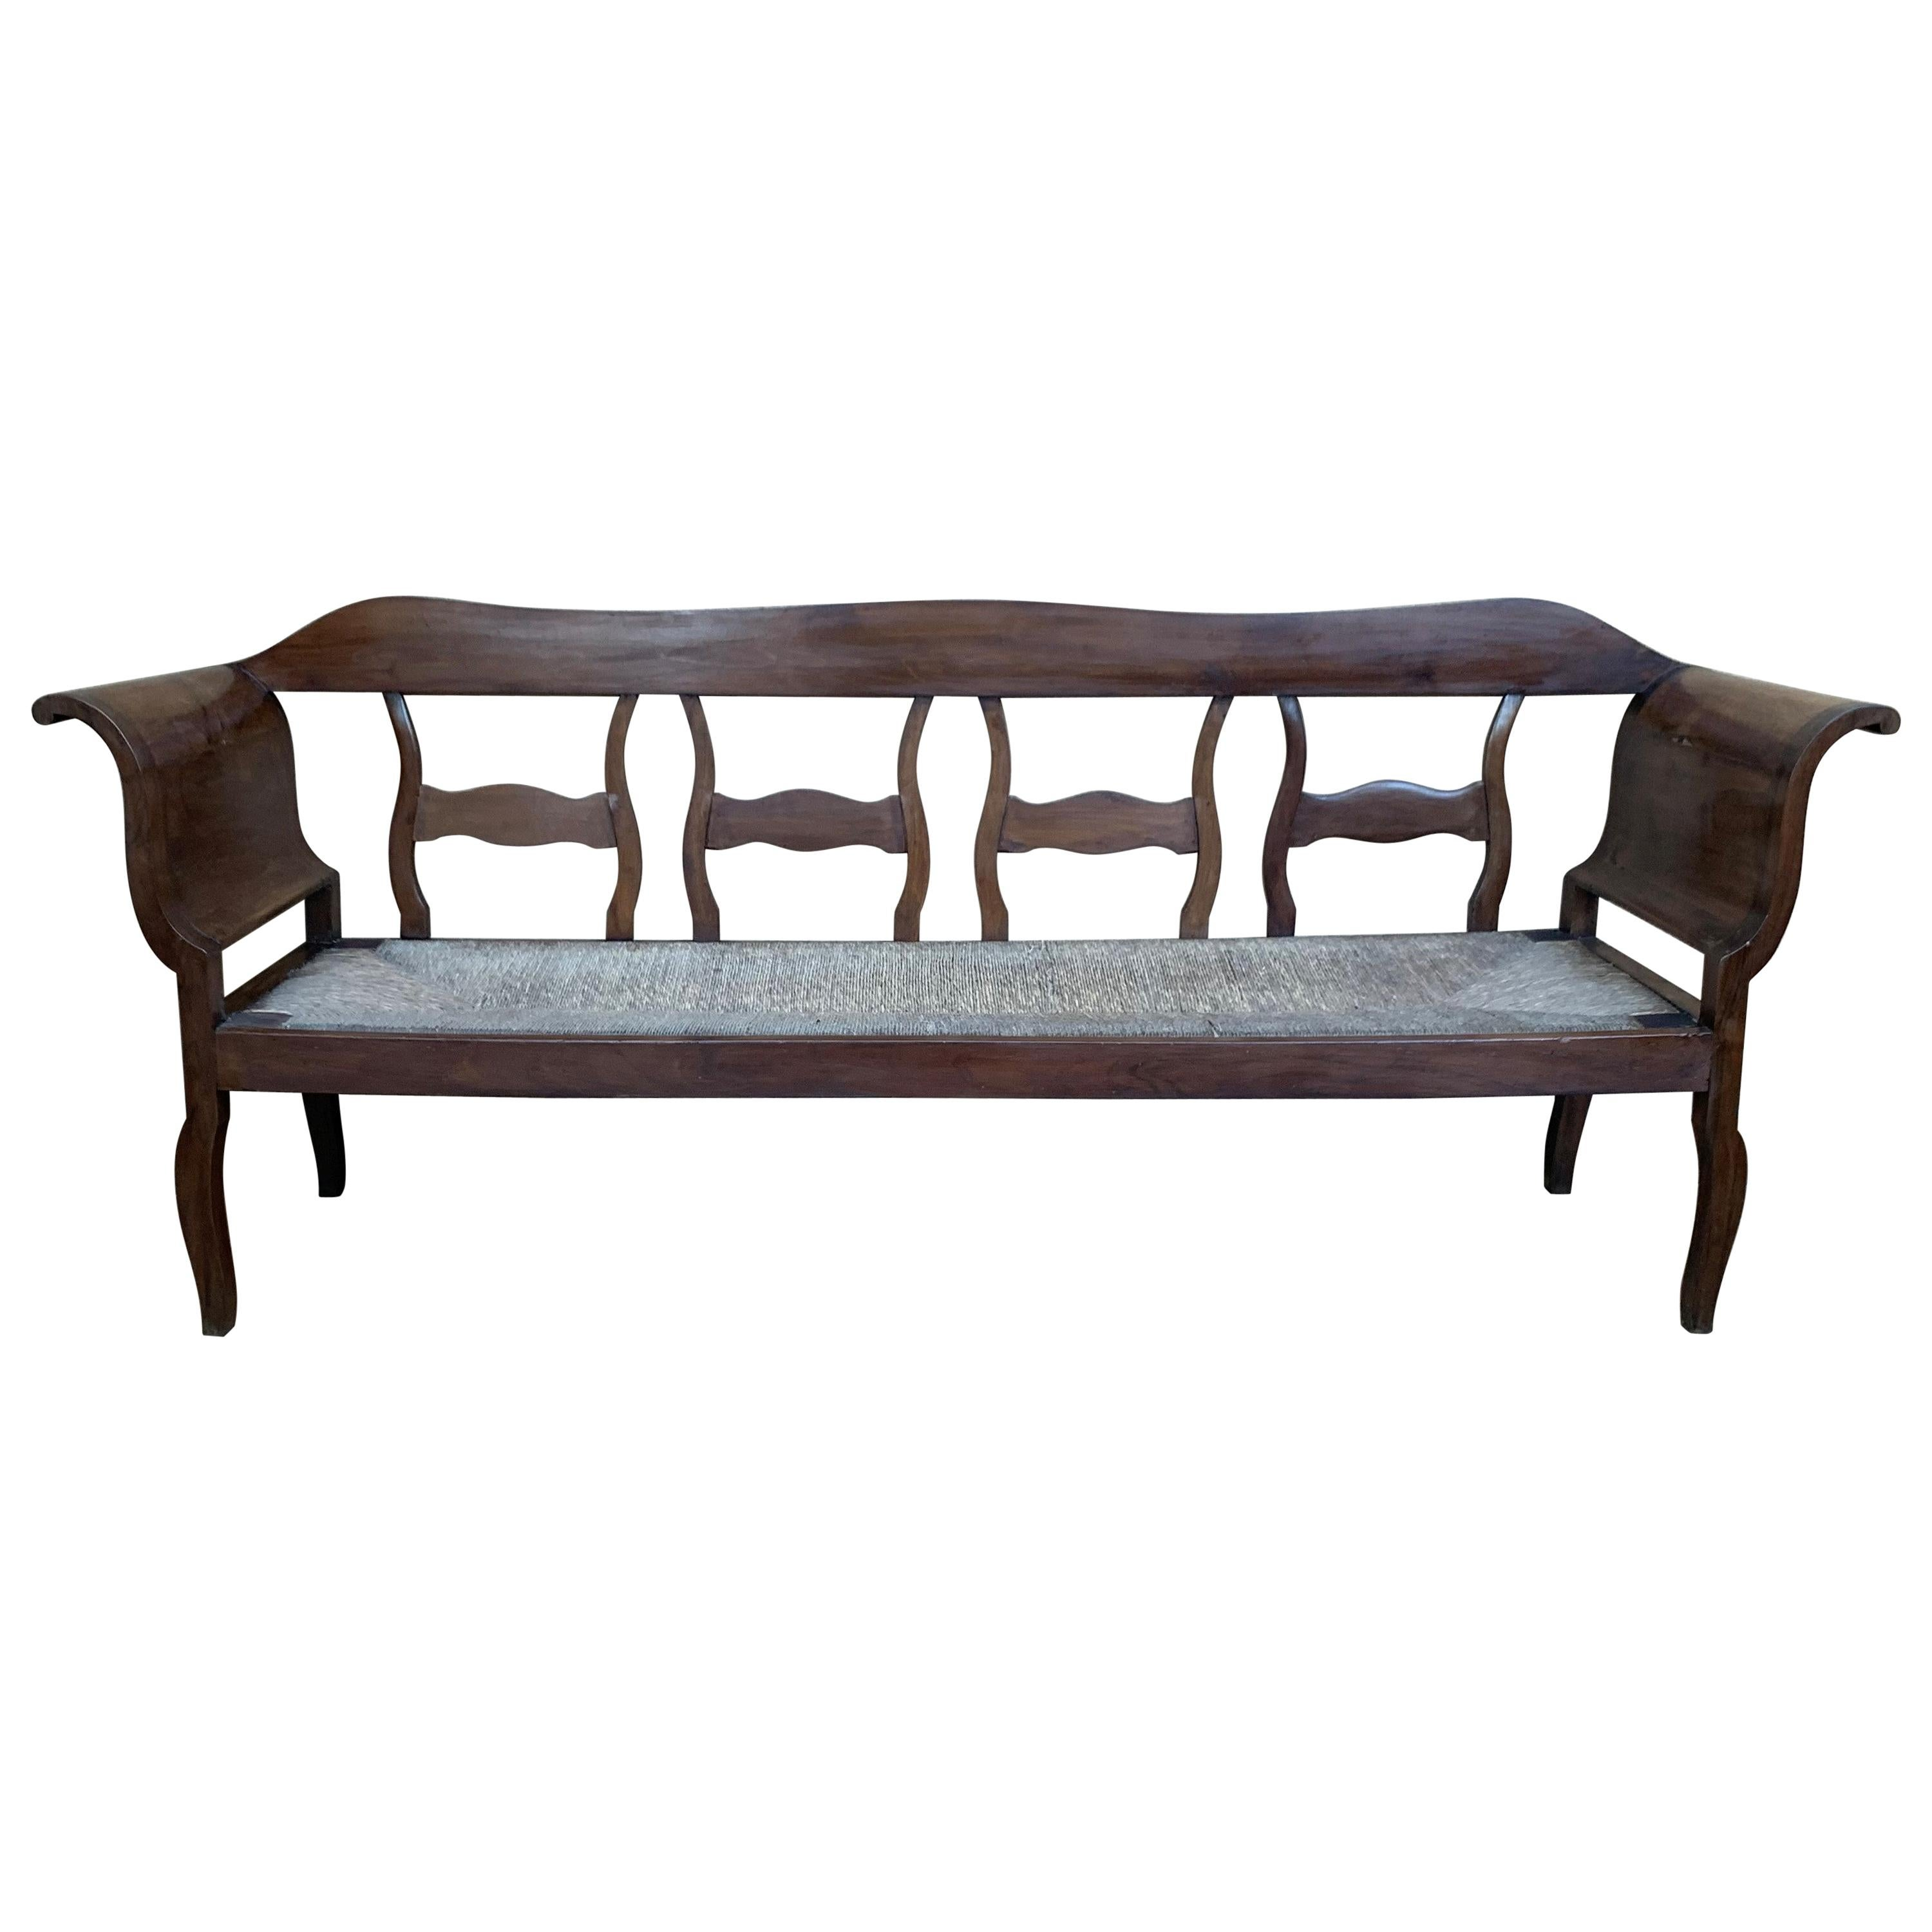 20th Century Large Catalan Bench in Walnut with Caned Seat